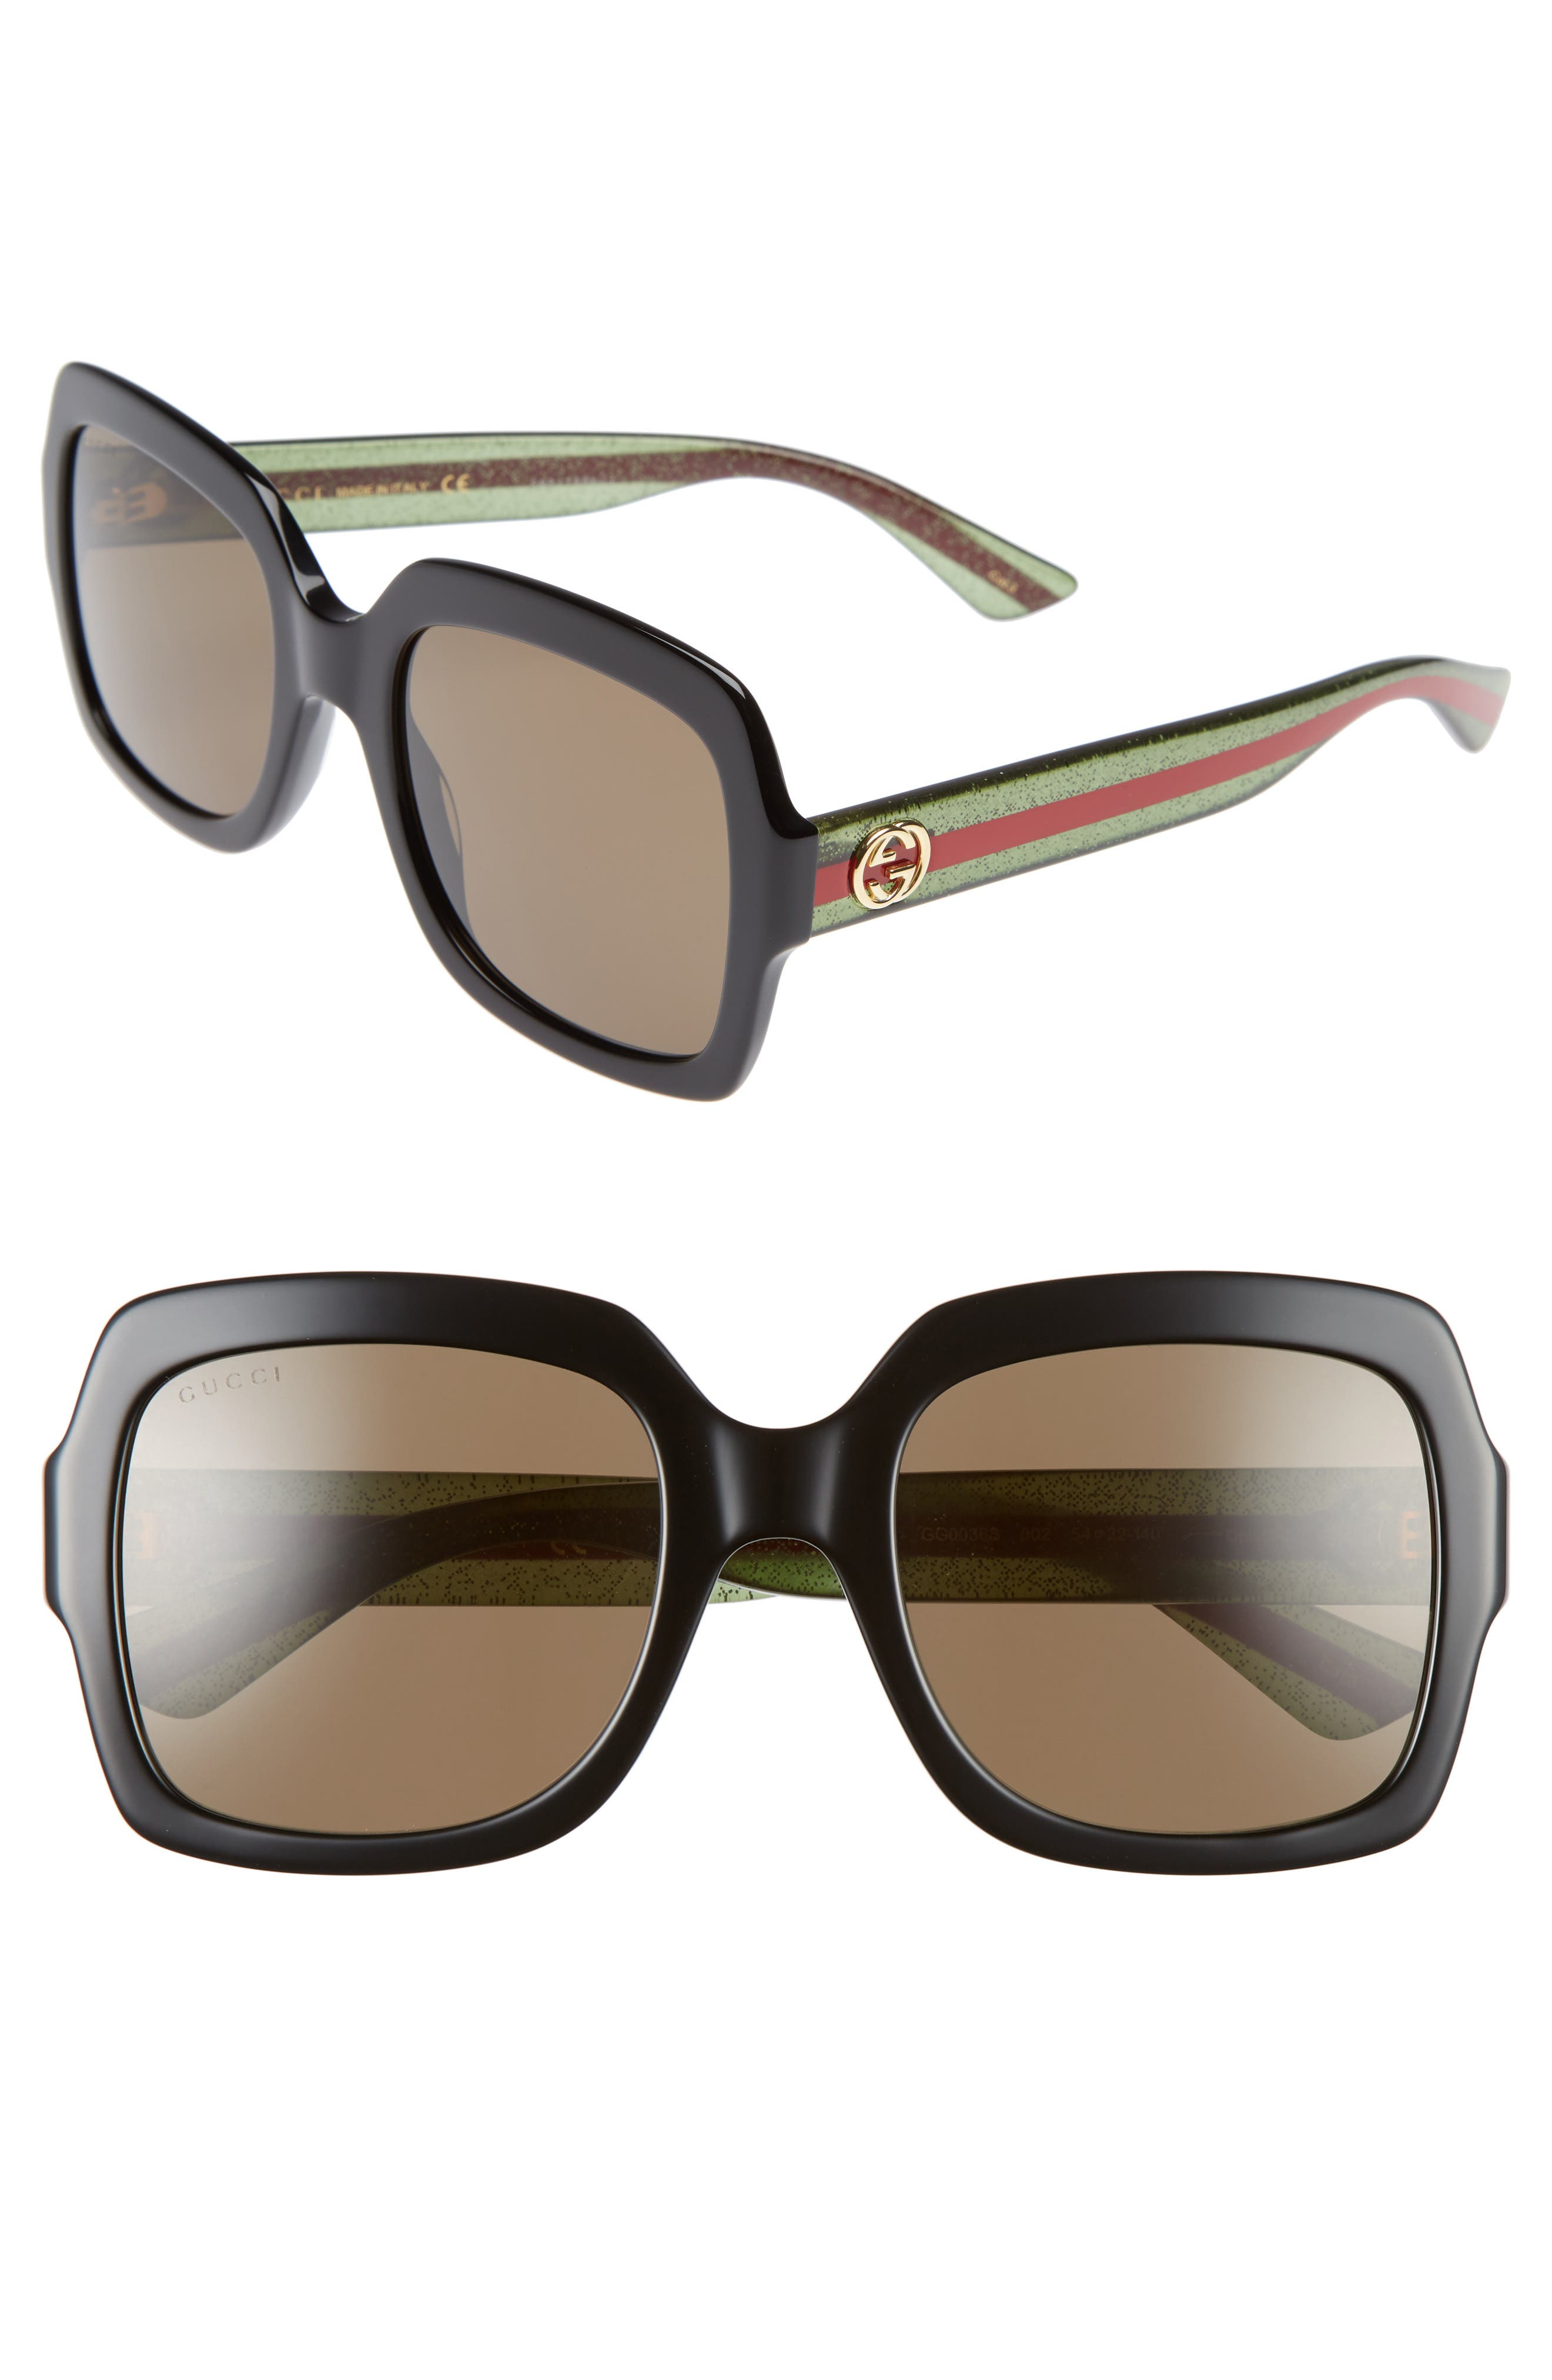 GUCCI, 54mm Square Sunglasses, Main thumbnail 1, color, BLACK/ BROWN